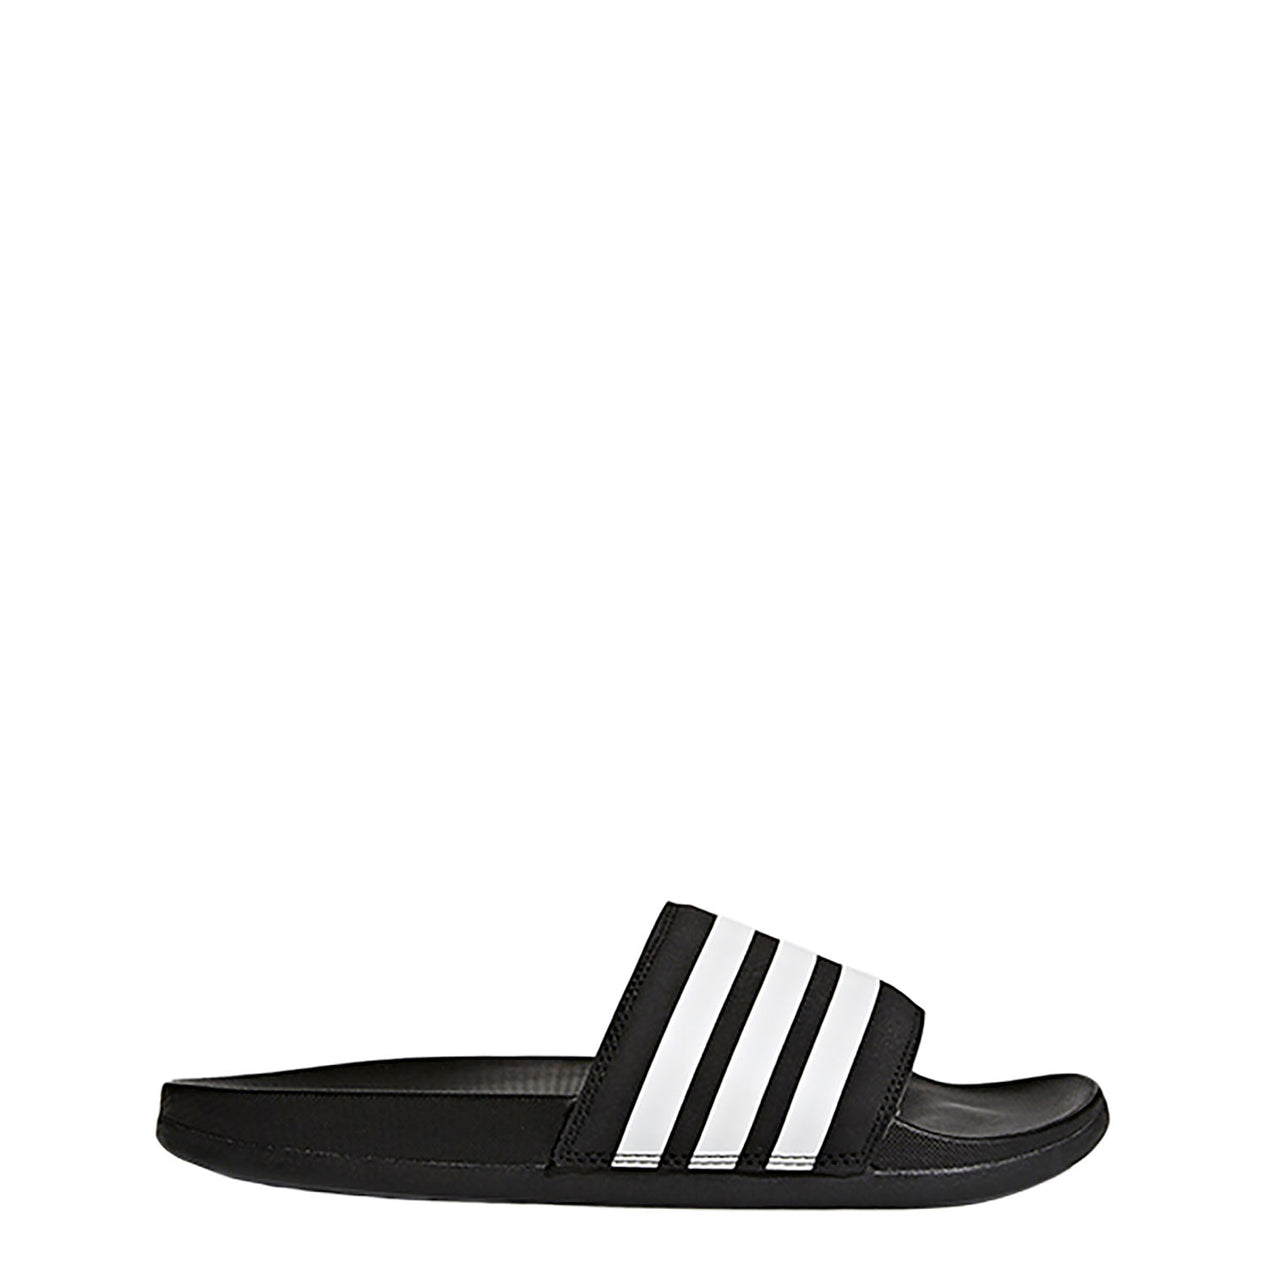 new arrival 6c1db e8316 Adidas Adilette Cloudfoam Plus Stripes Slides - Women s.  30.99 CAD  41.99  CAD. 5 star rating 1 Review. Select Color   Size. Core Black ...